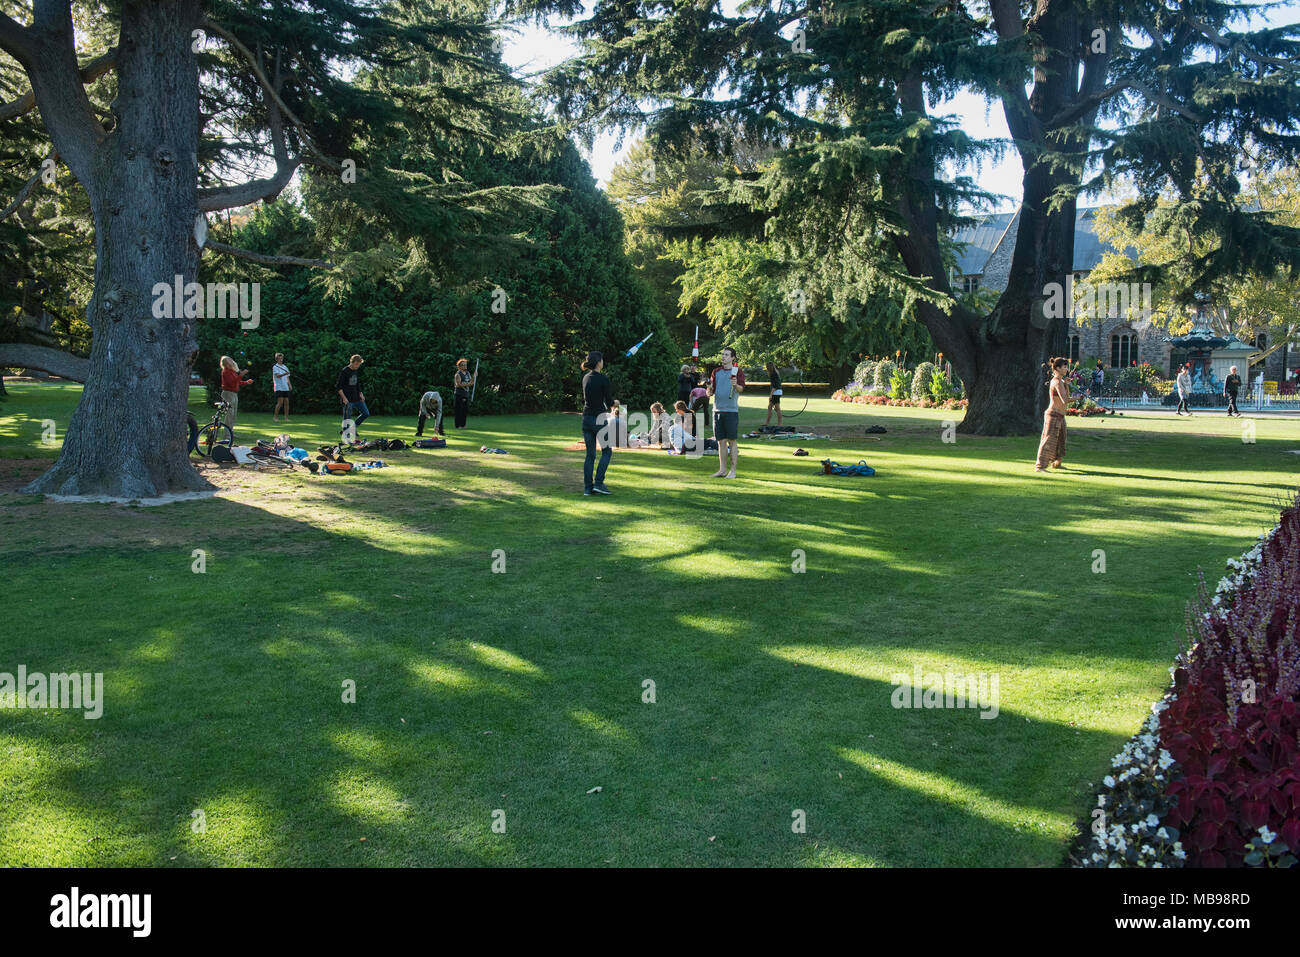 Juggling and performance arts in the park, Christchurch, New Zealand - Stock Image